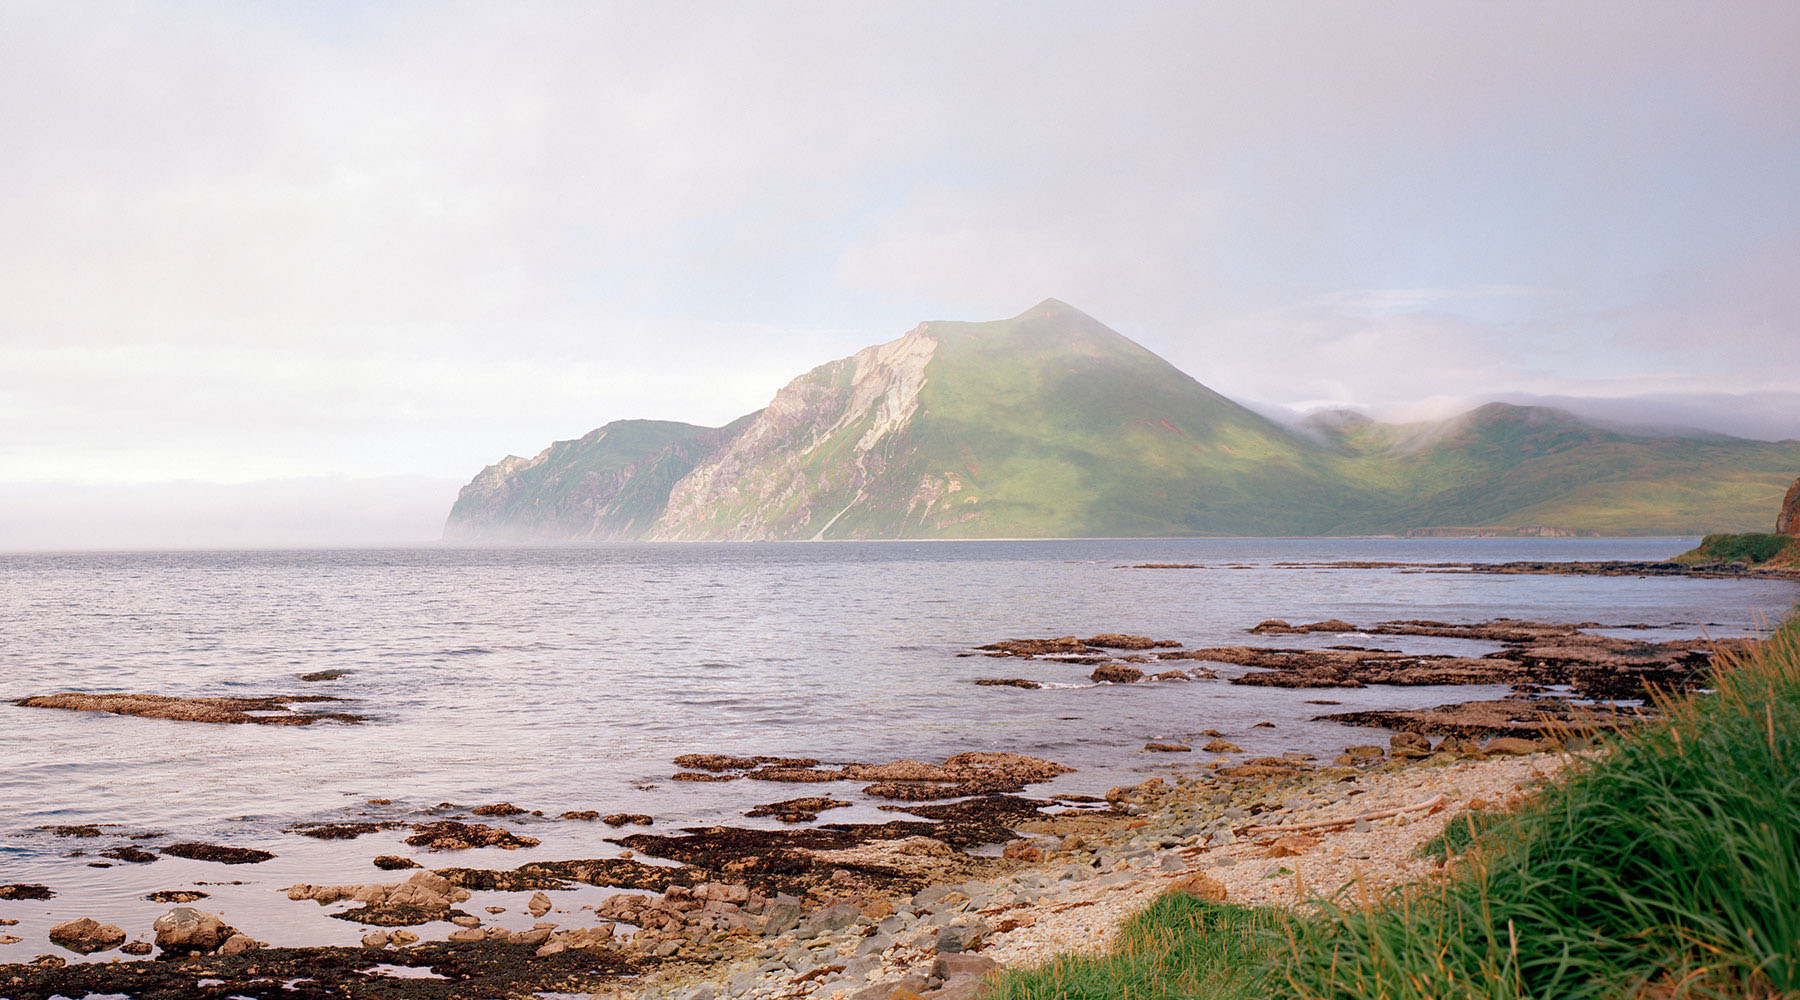 the misty green hills of Dutch Harbor Alaska as seen from the beach